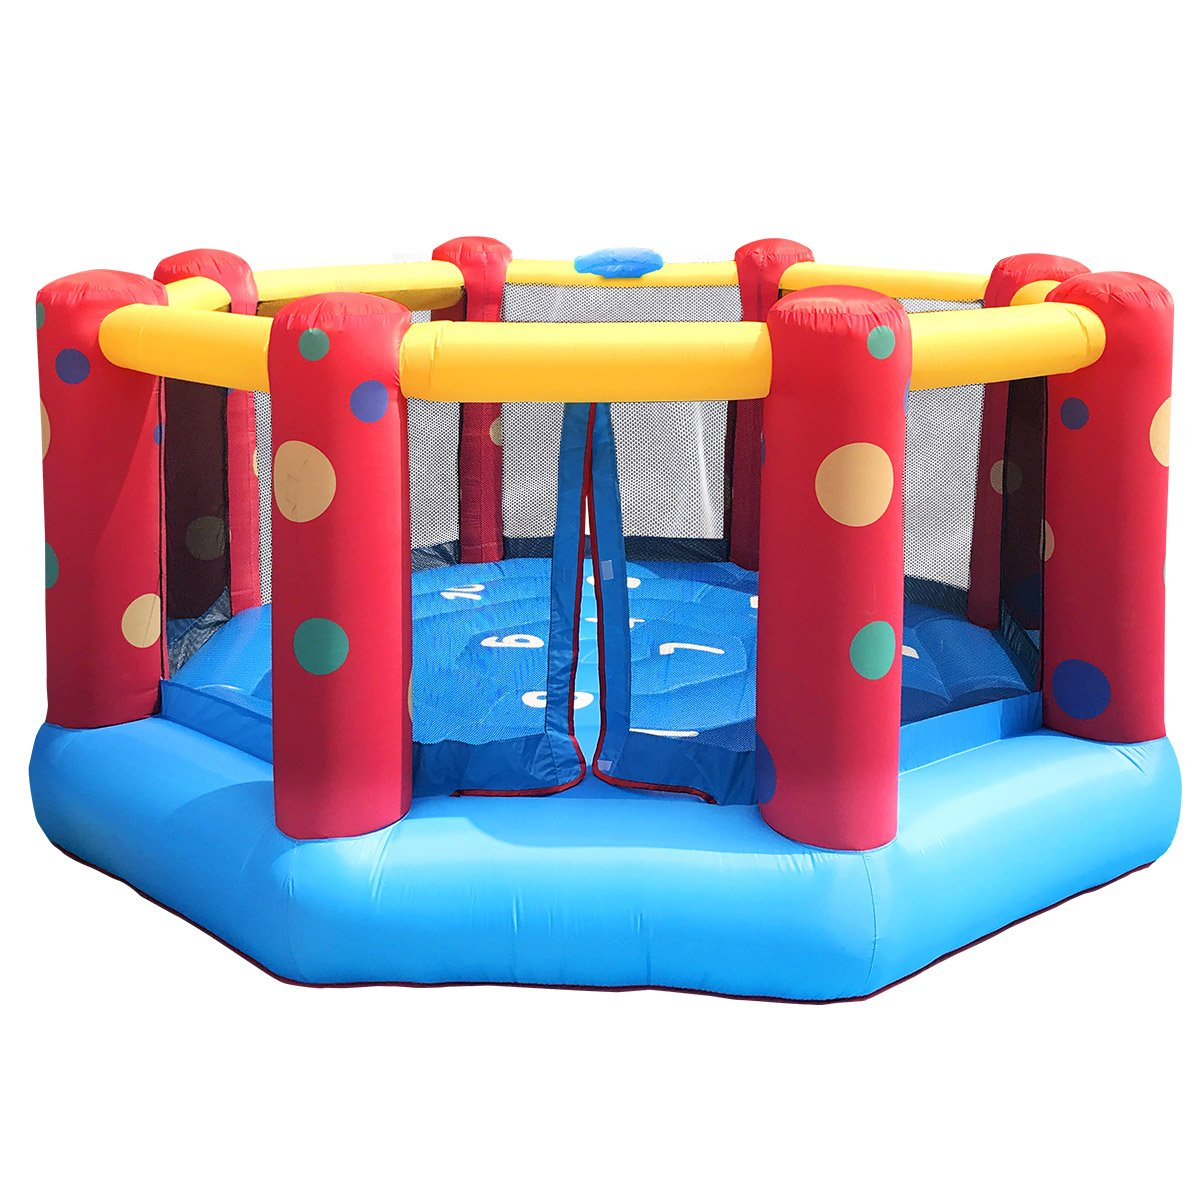 AirZone 8 Bouncer   outdoor playtime fun for the kids